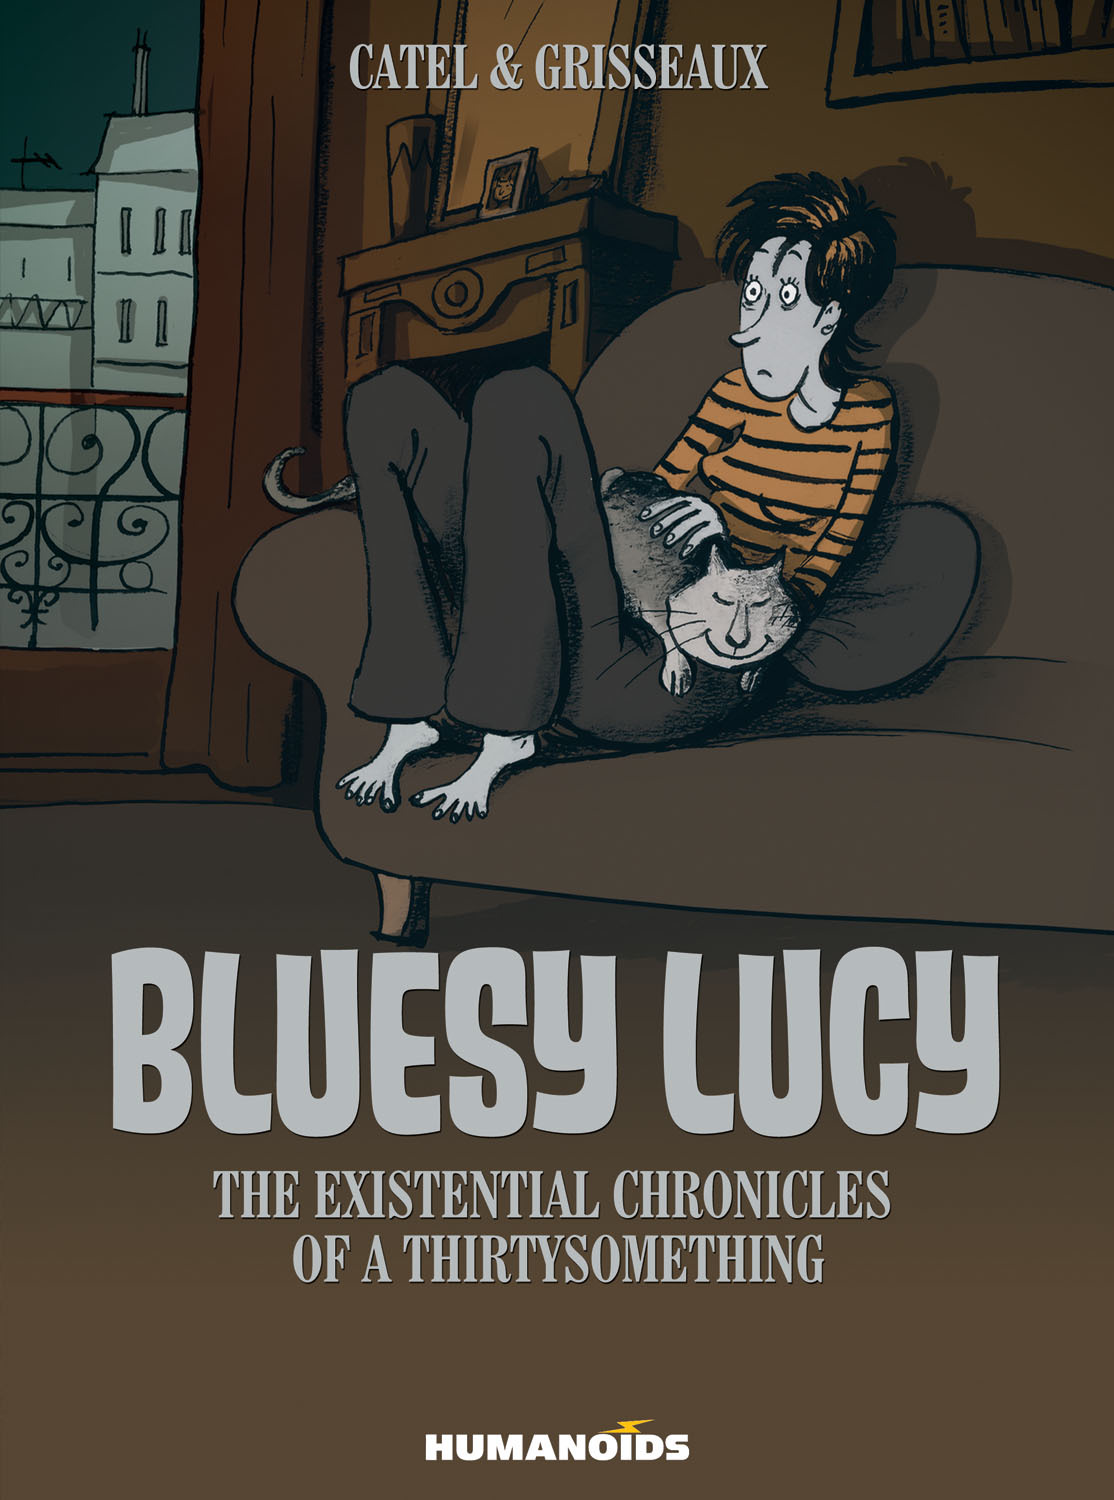 Bluesy Lucy - The Existential Chronicles of a Thirtysomething - Hardcover Trade